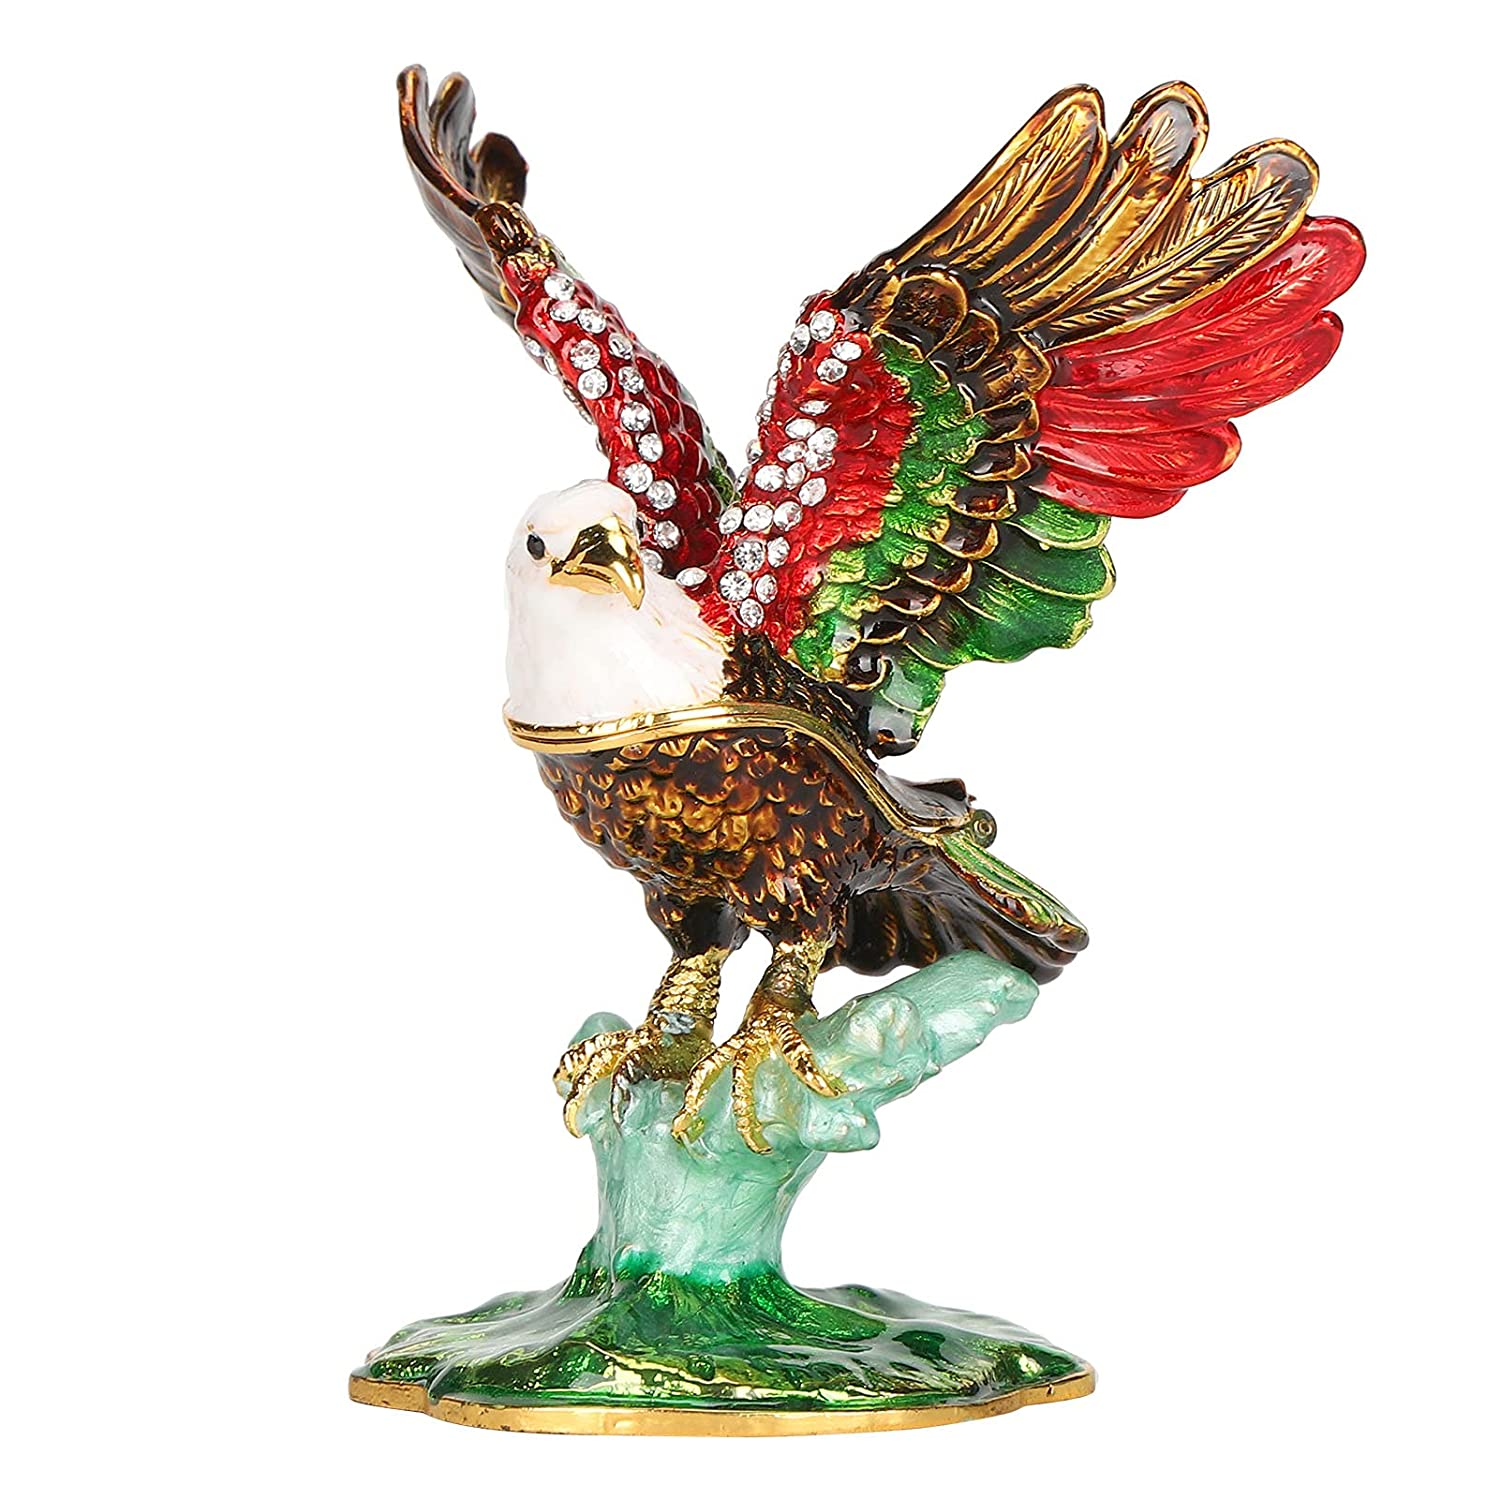 Sales of Max 70% OFF SALE items from new works Eagle Model Craft Figurine Painted Enamel for Hand‑Made